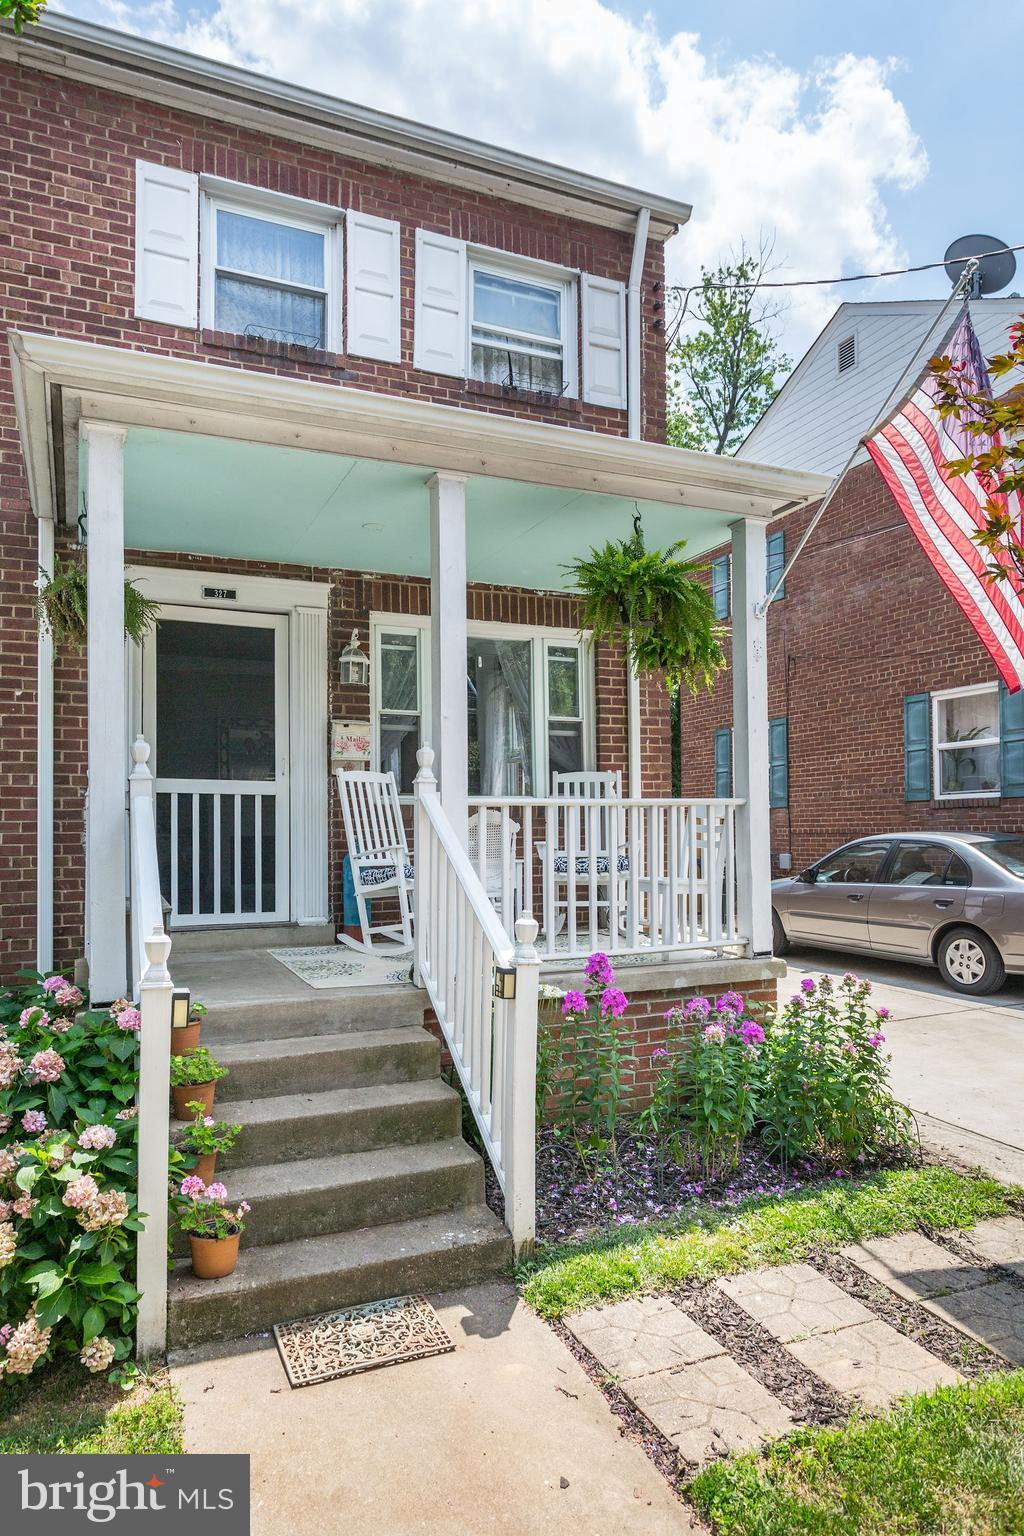 OPEN HOUSE - SUNDAY 10/21 1-4!!  Gorgeous 2 BR, 2 bath renovated & expanded duplex in Del Ray! Charming front porch welcomes you to this light filled home. Beautiful HW floors, lovely kitchen & separate DR, expanded FR w/ deck & fenced, private yard w/ maintenance free turf! The lower level features a finished rec room or 3rd BR & full bath in finished basement.. Walk to Del Ray & Potomac Yard.